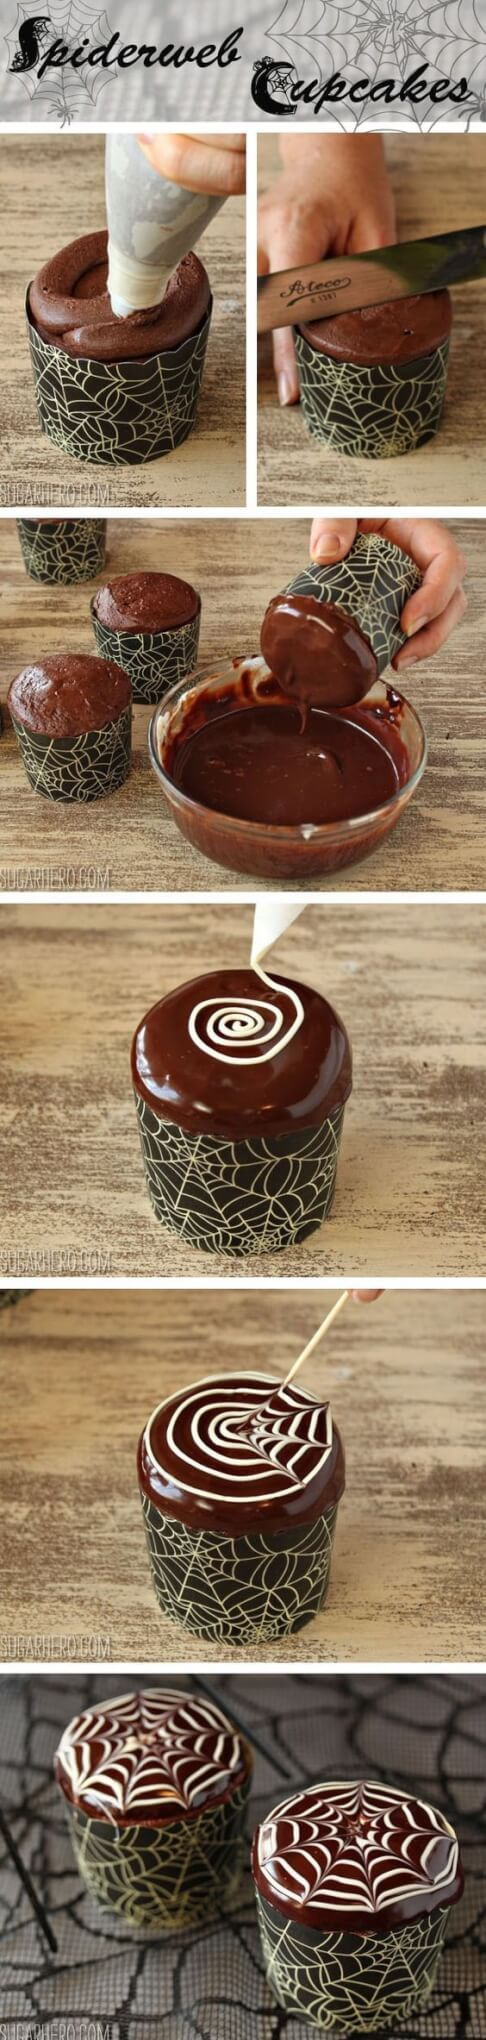 awesome Spiderweb Cupcakes and Chocolate Spiders